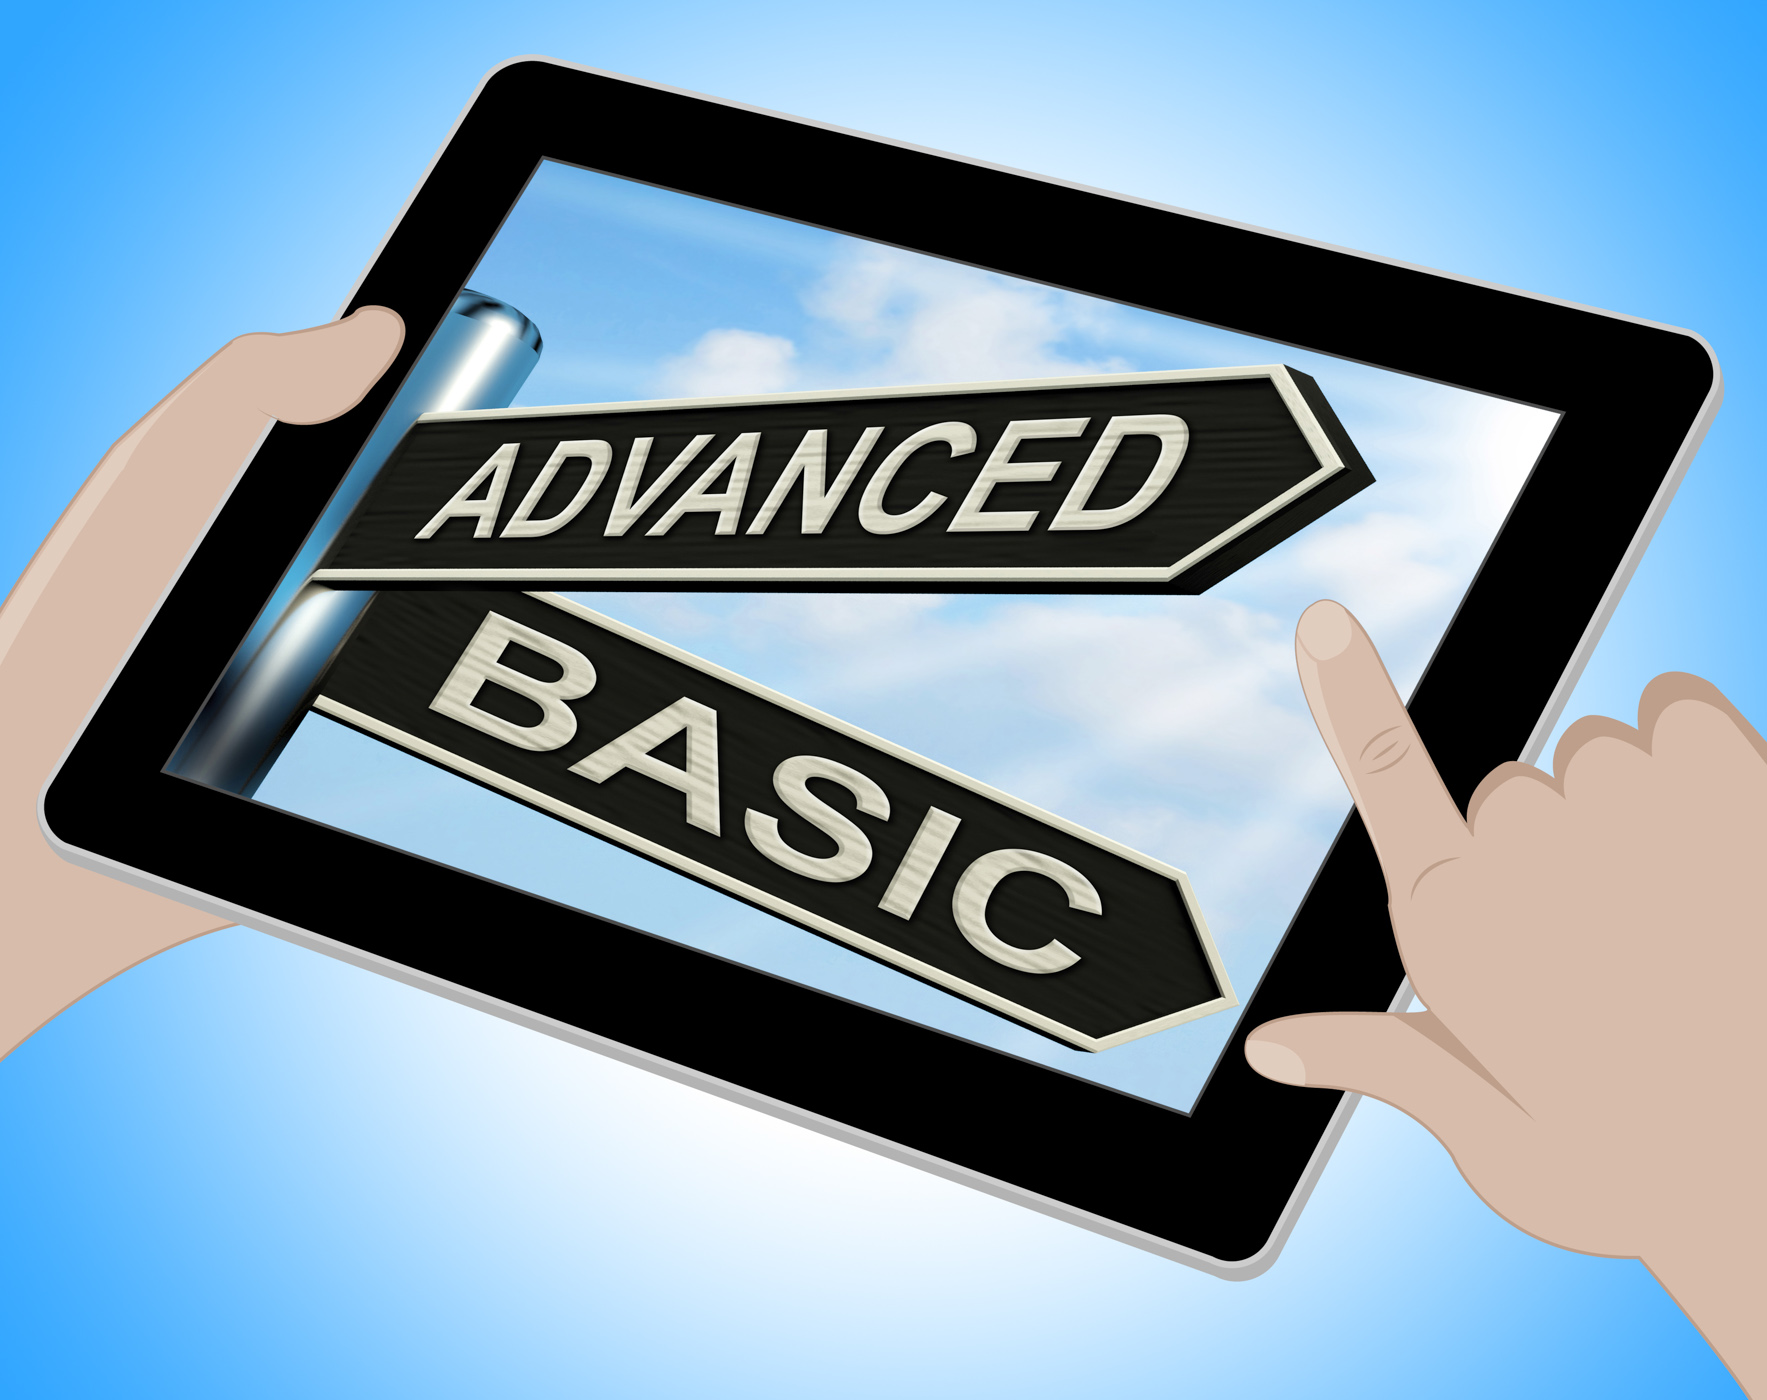 Advanced Basic Tablet Shows Product Versions And Prices, Advanced, Online, Web, Versions, HQ Photo